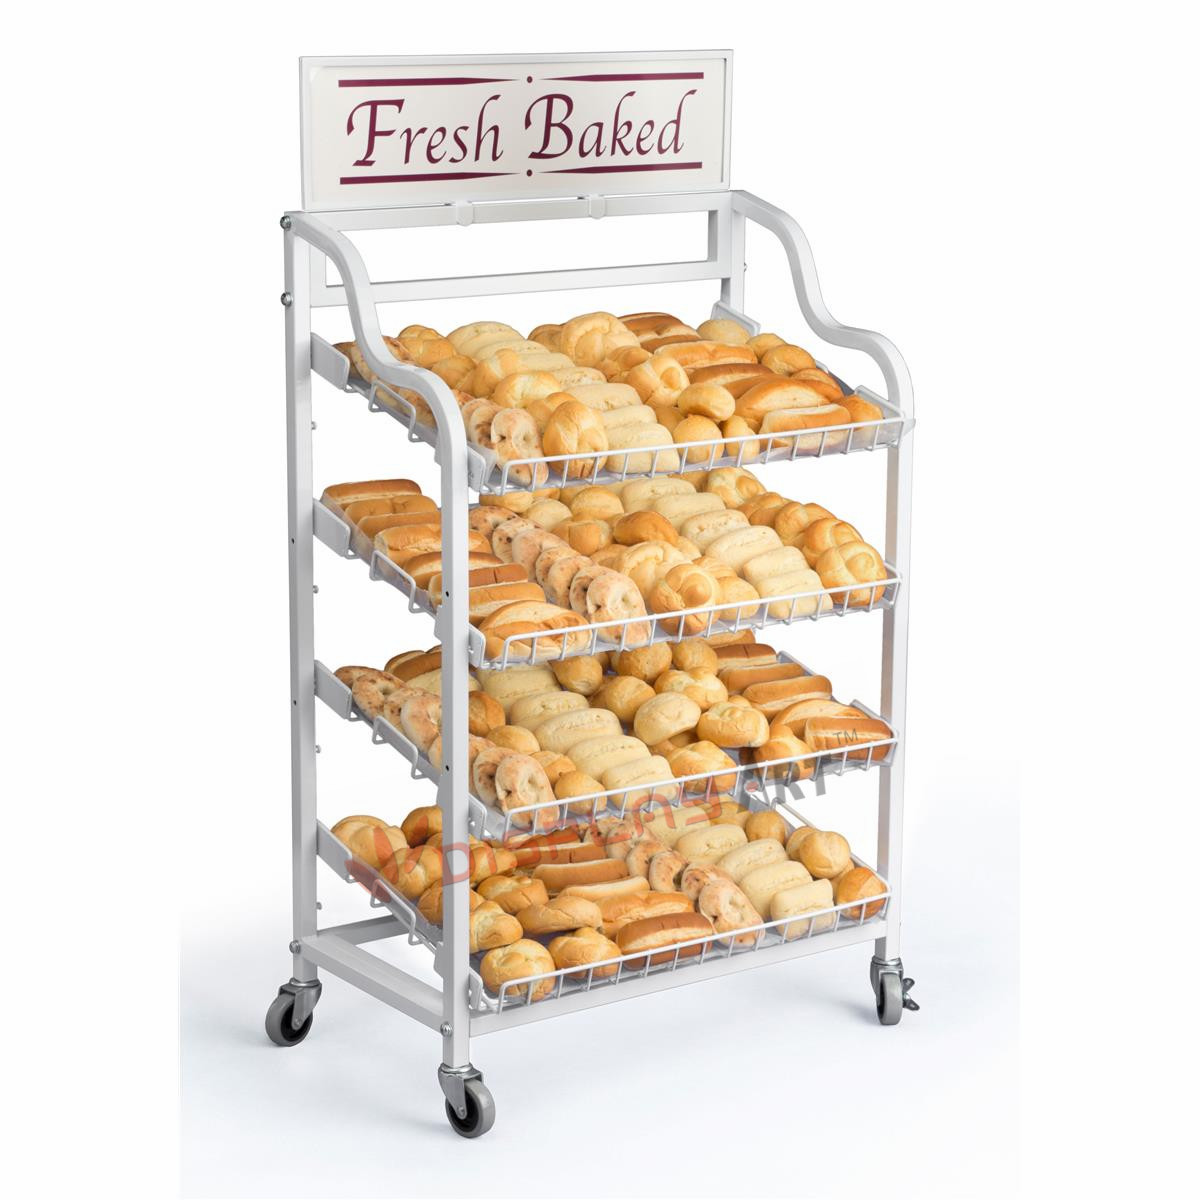 Bread Display Rack For Retail Store And Bakery - Buy Bread ...